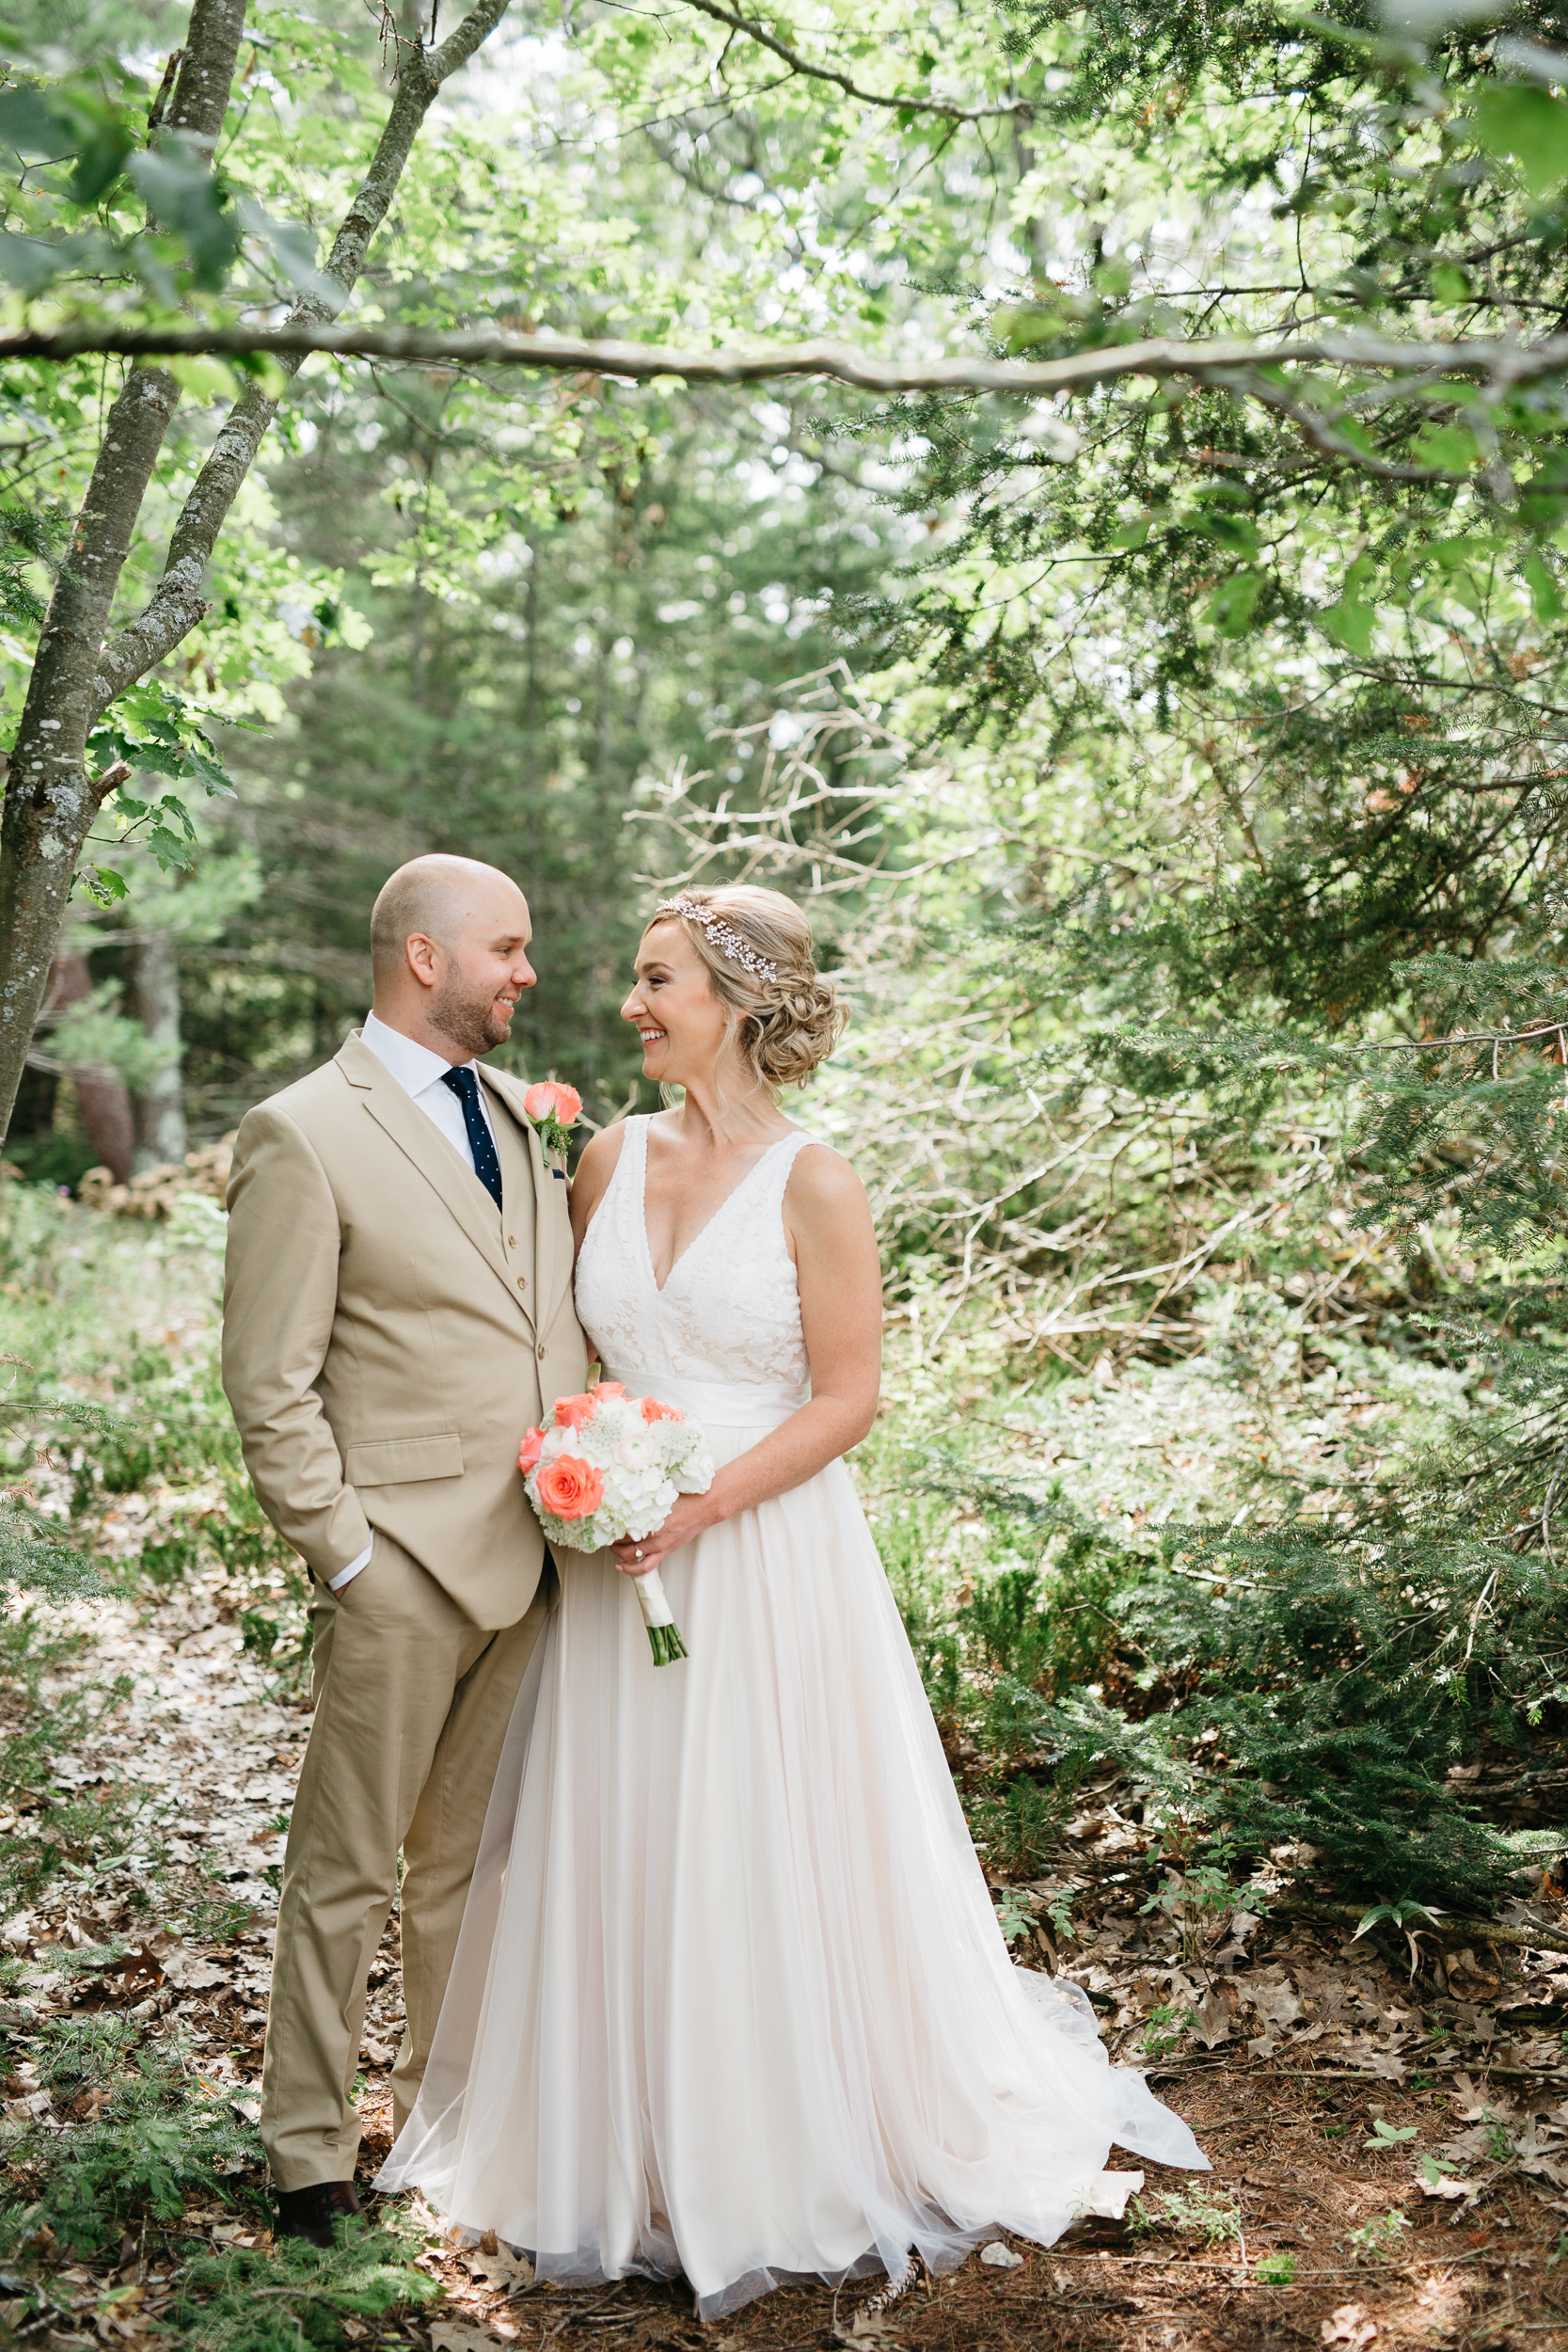 Lauren & Nick | Glen Arbor, MI